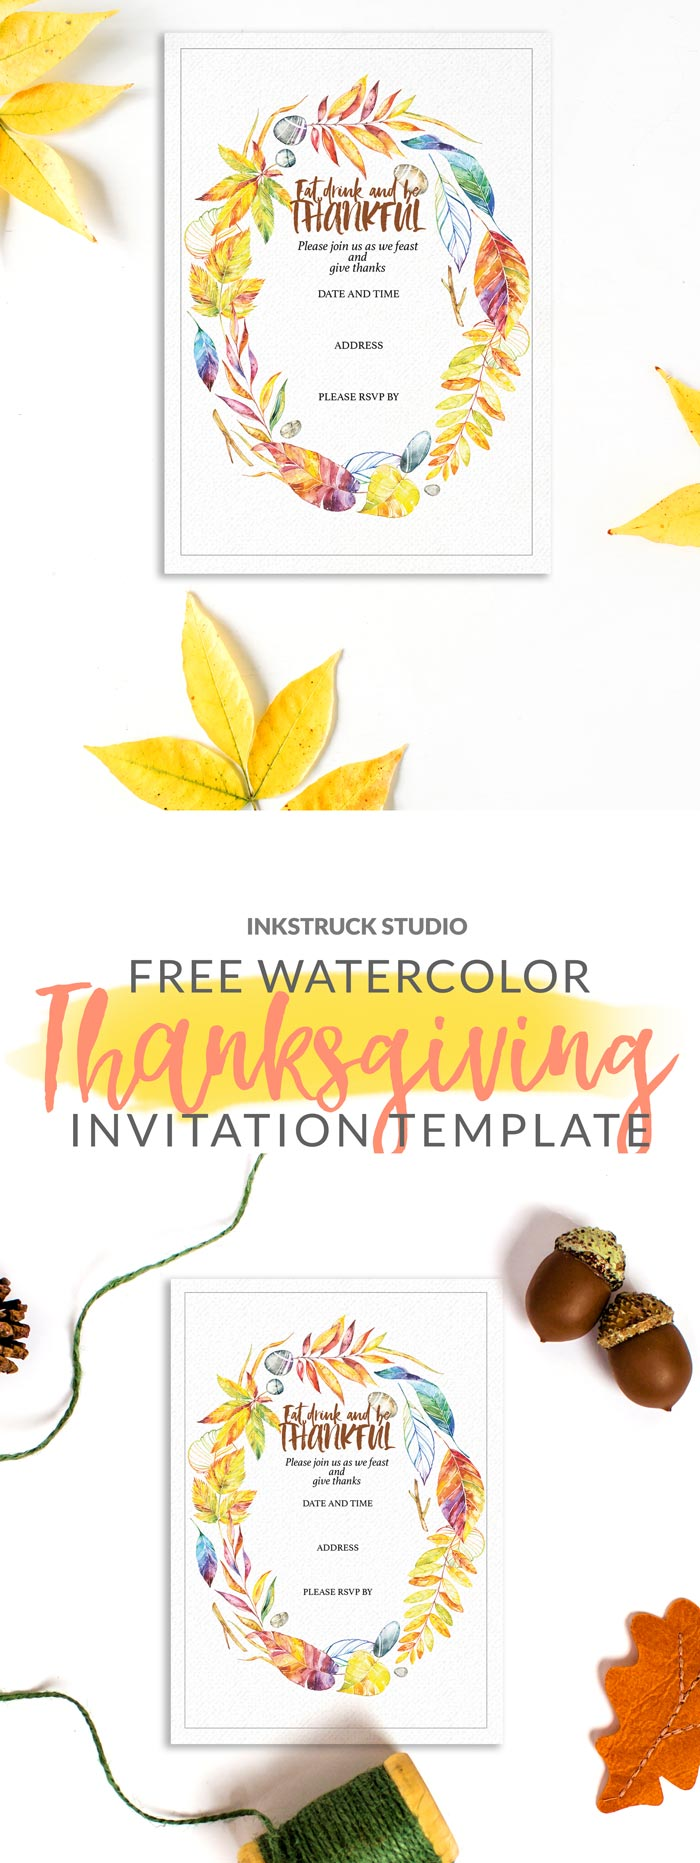 photograph regarding Free Printable Thanksgiving Invitations titled thanksgiving invite template -